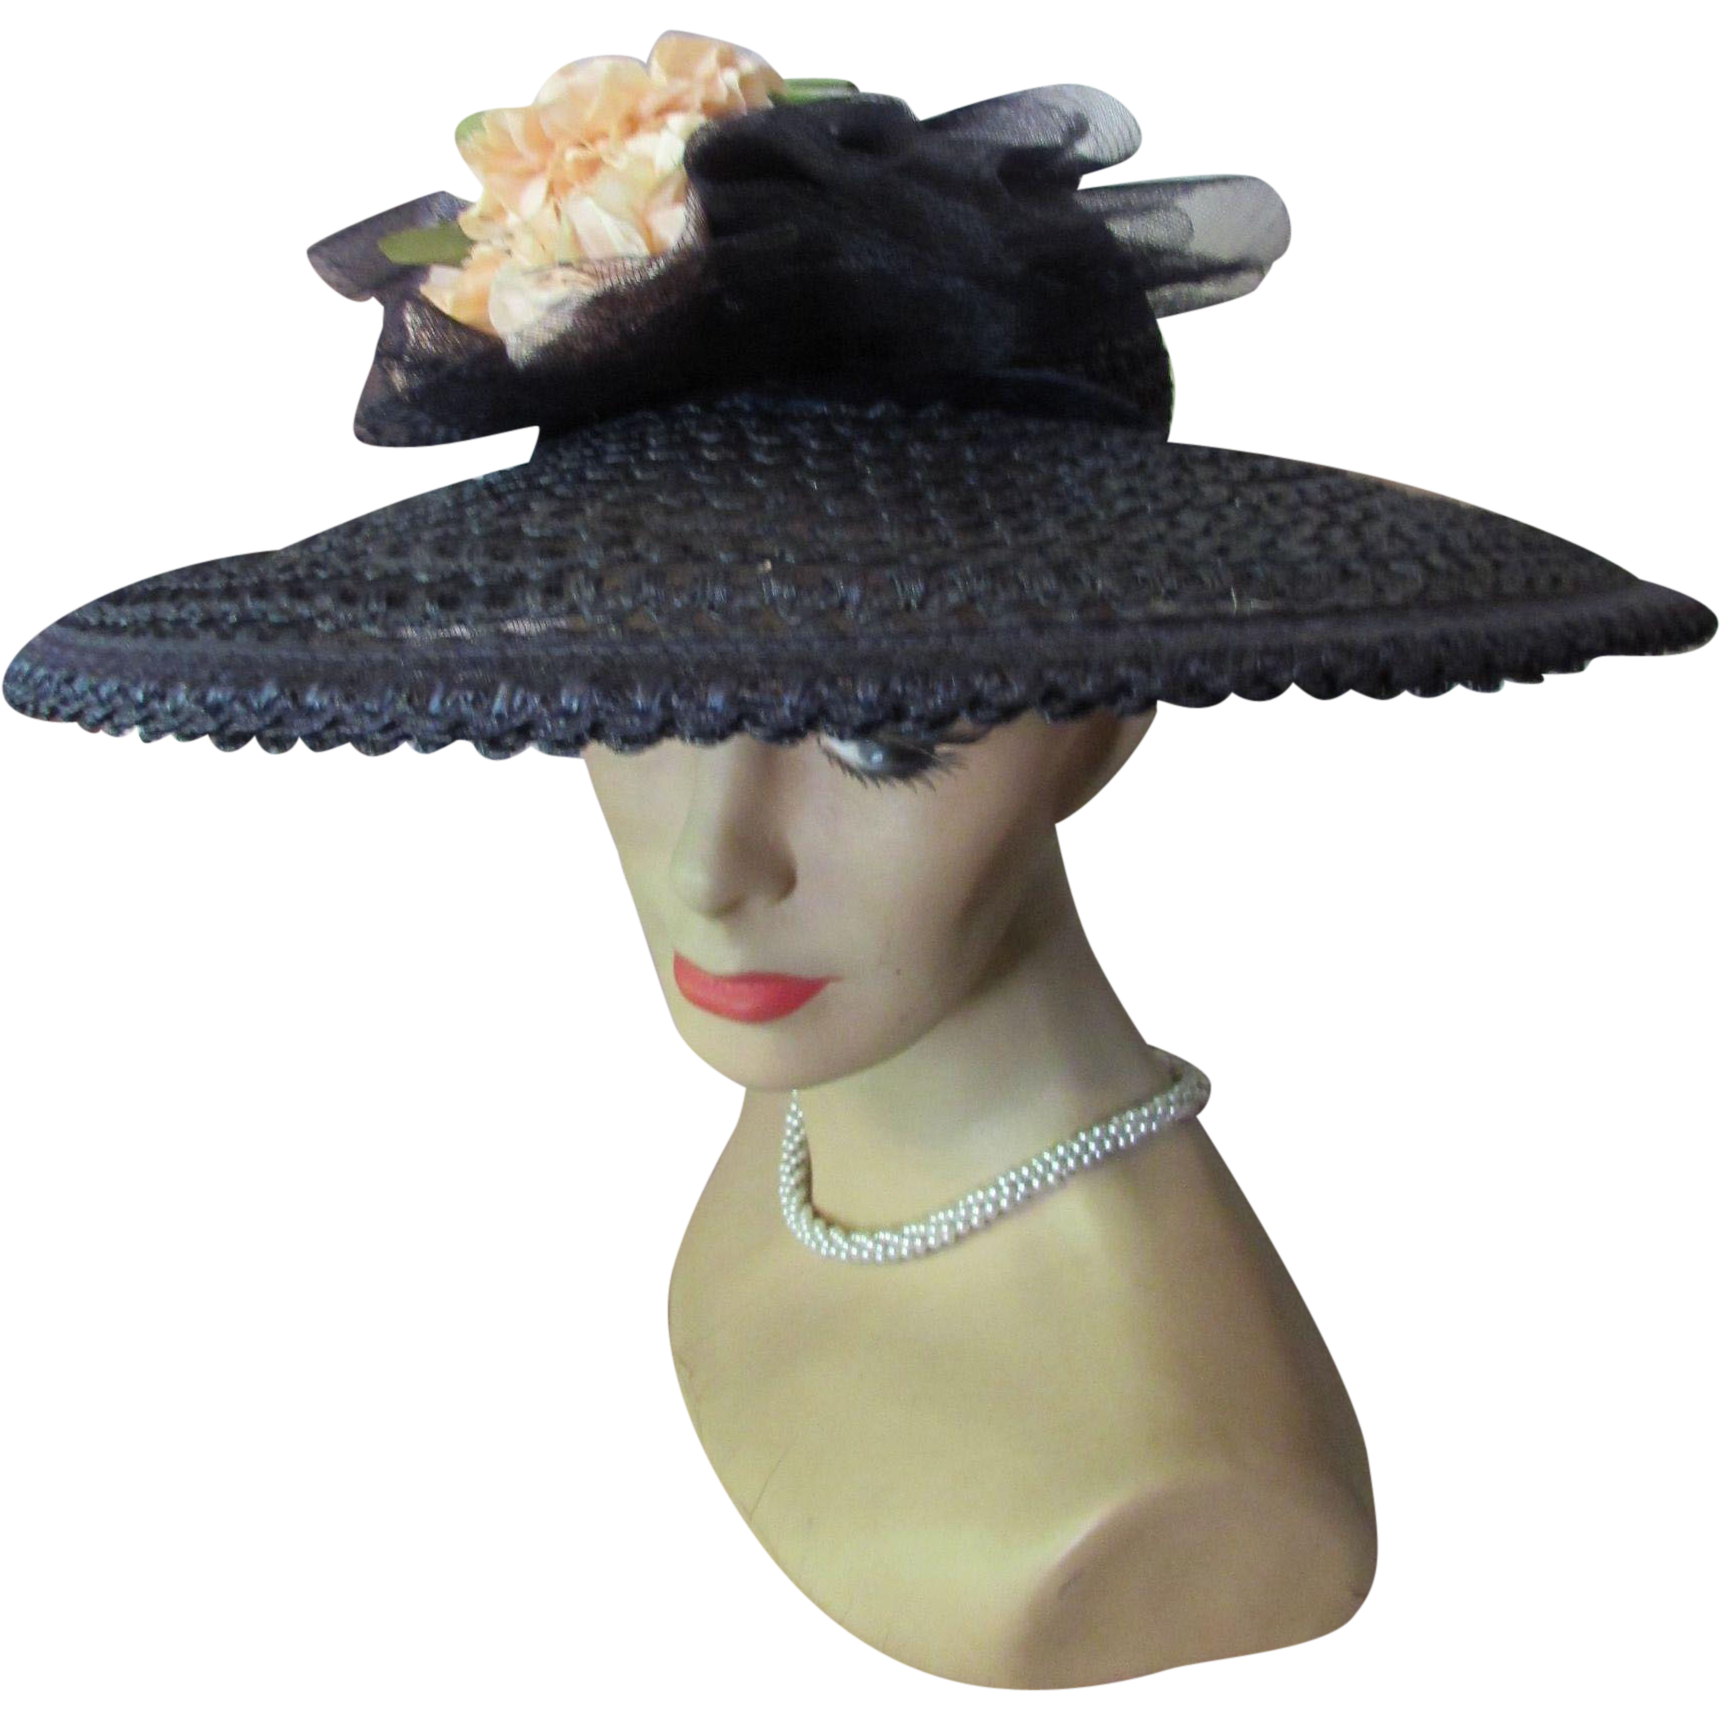 Sophisticated Navy Straw Hat Picture Style with Open Work and Clutch of Peach Roses Mid-Century